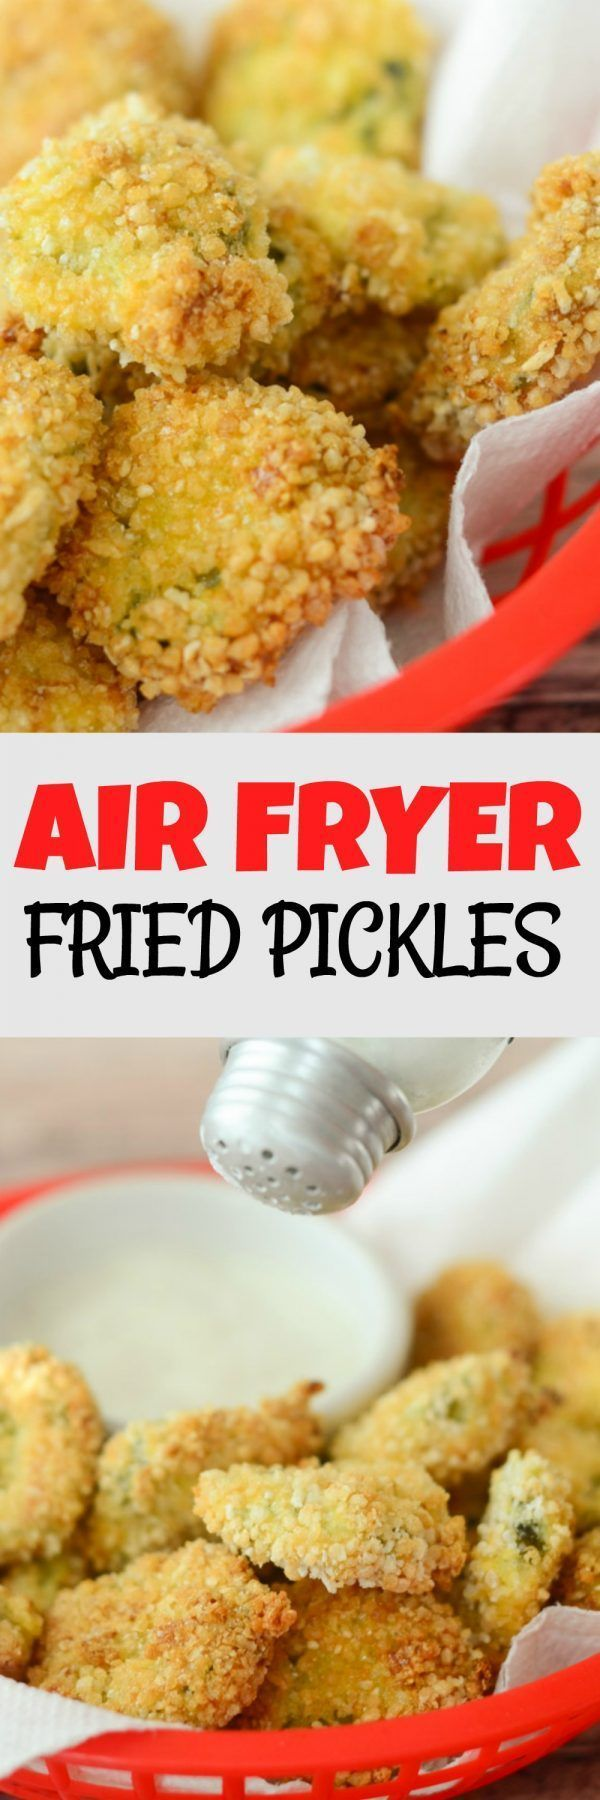 Gluten Free Air Fryer Fried Pickles Make them Gluten